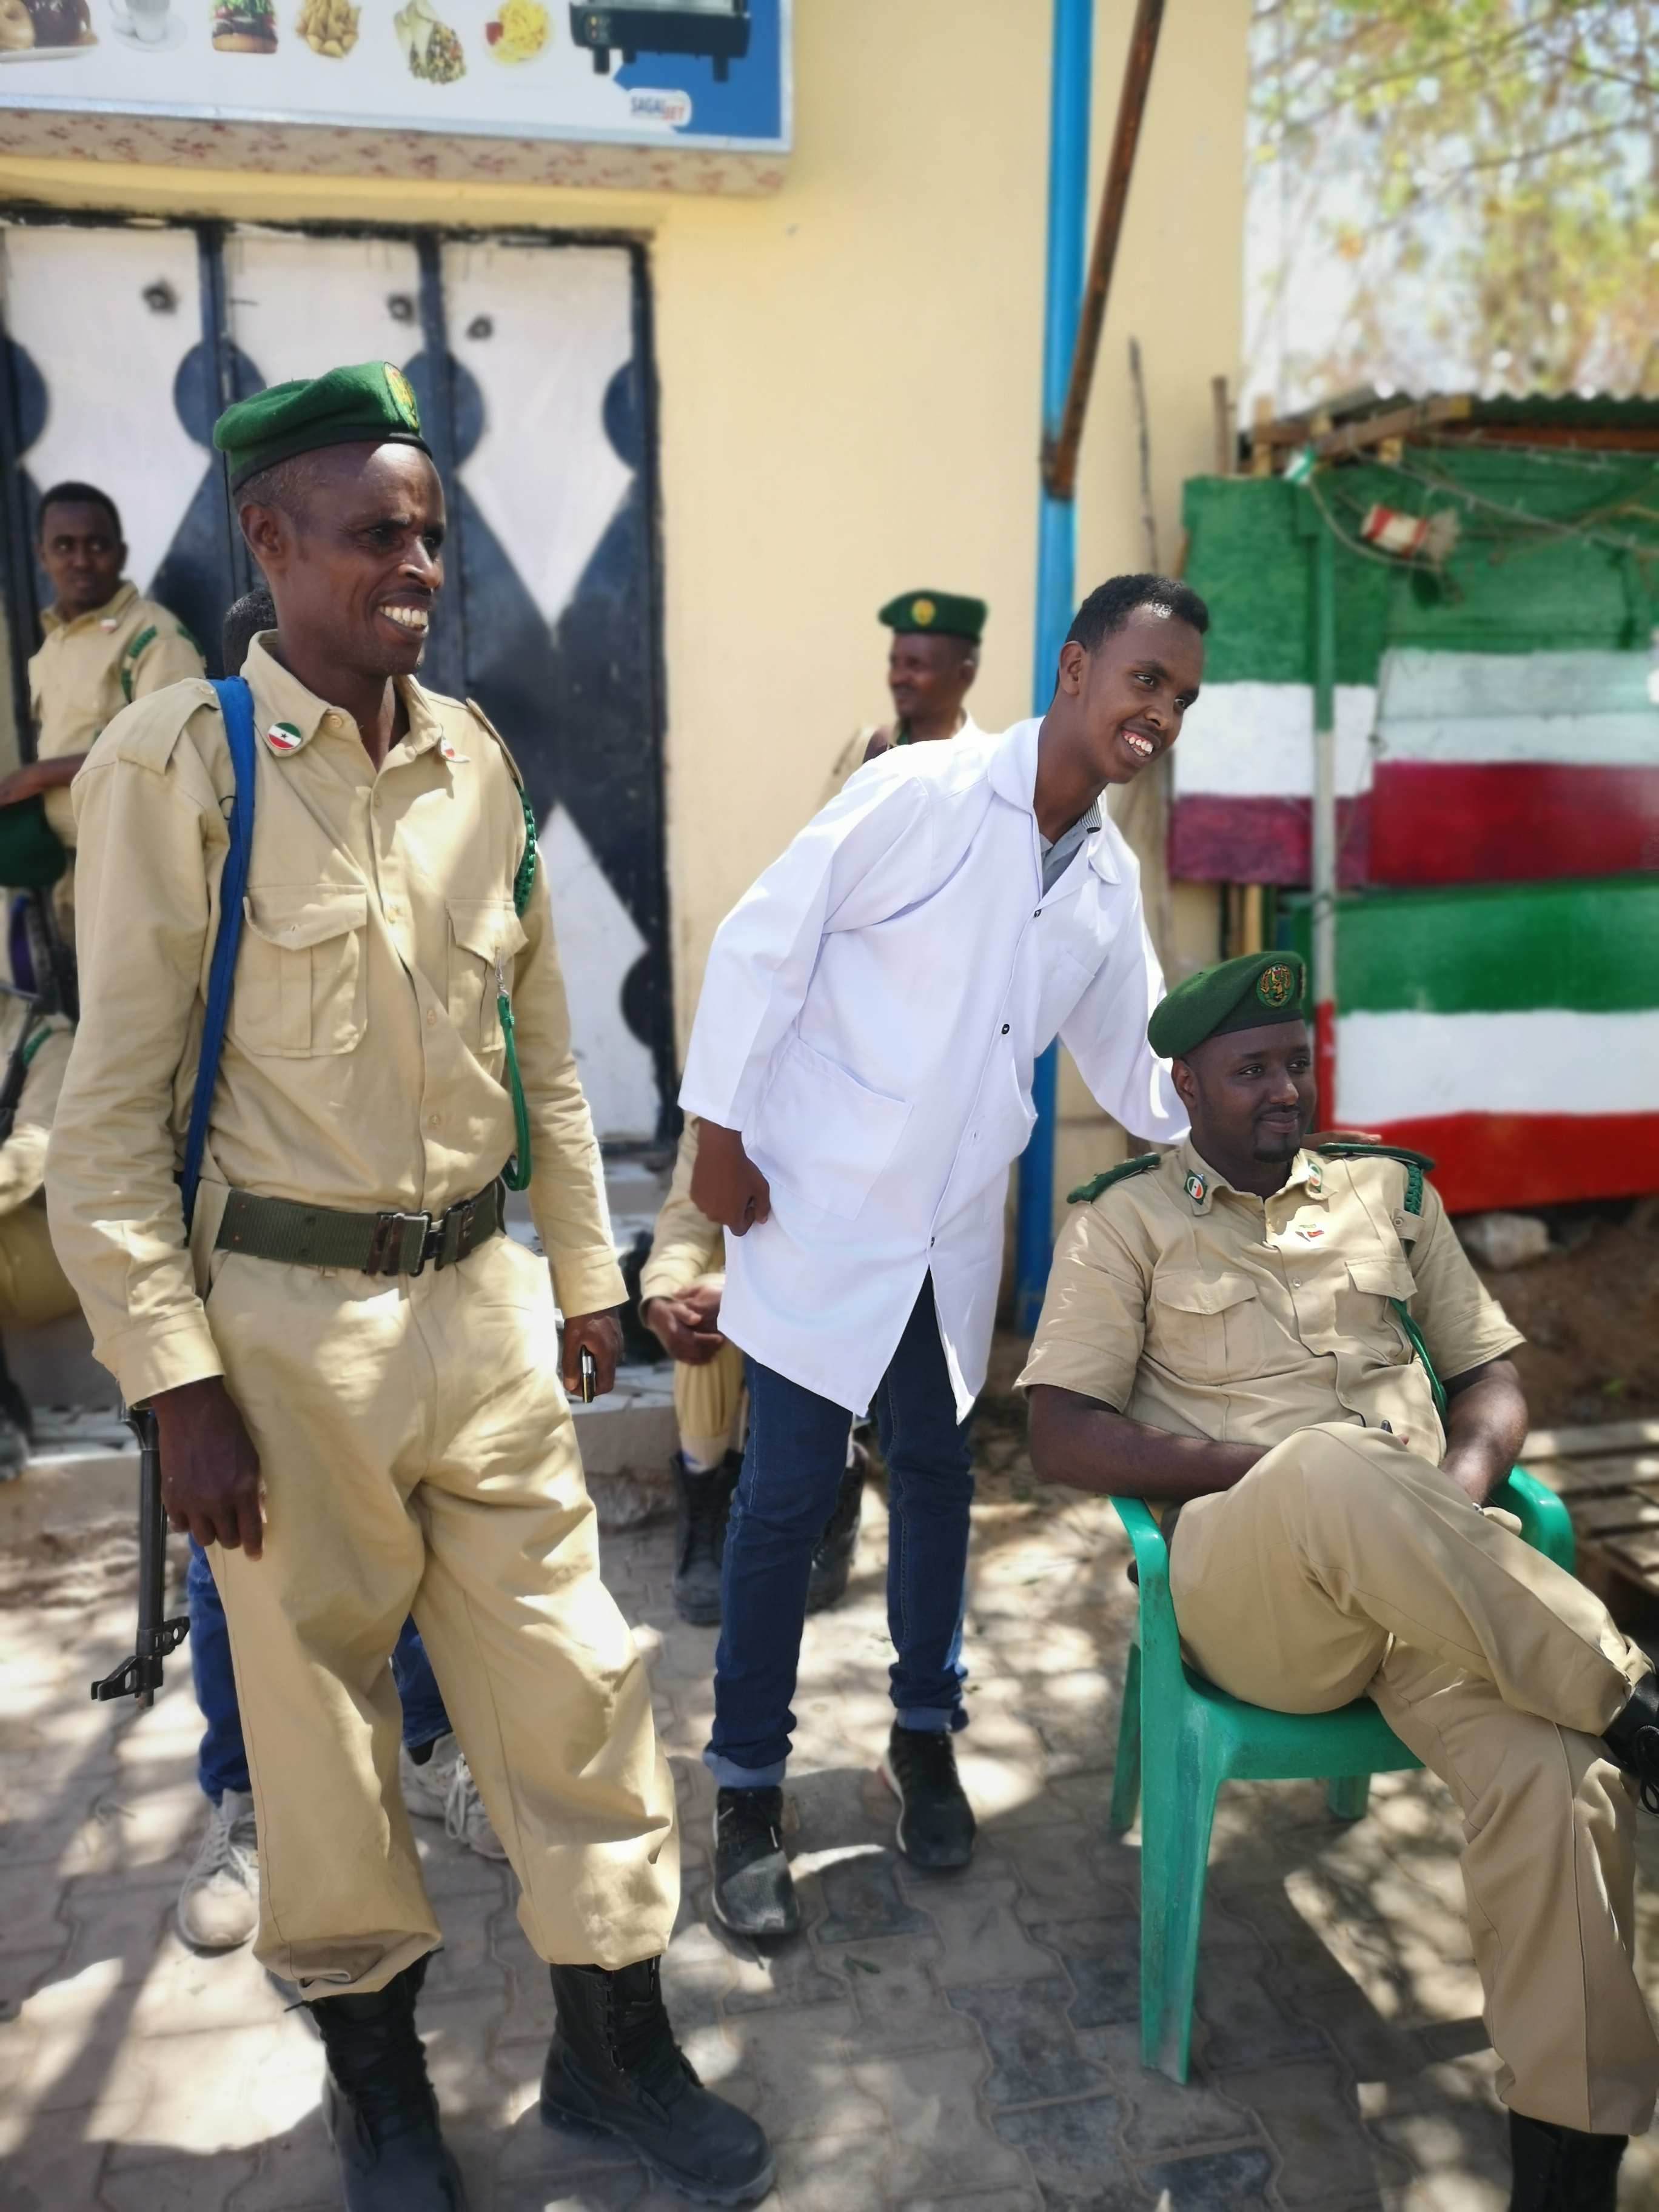 Soldiers resting during the Somaliland Independence Day Parade